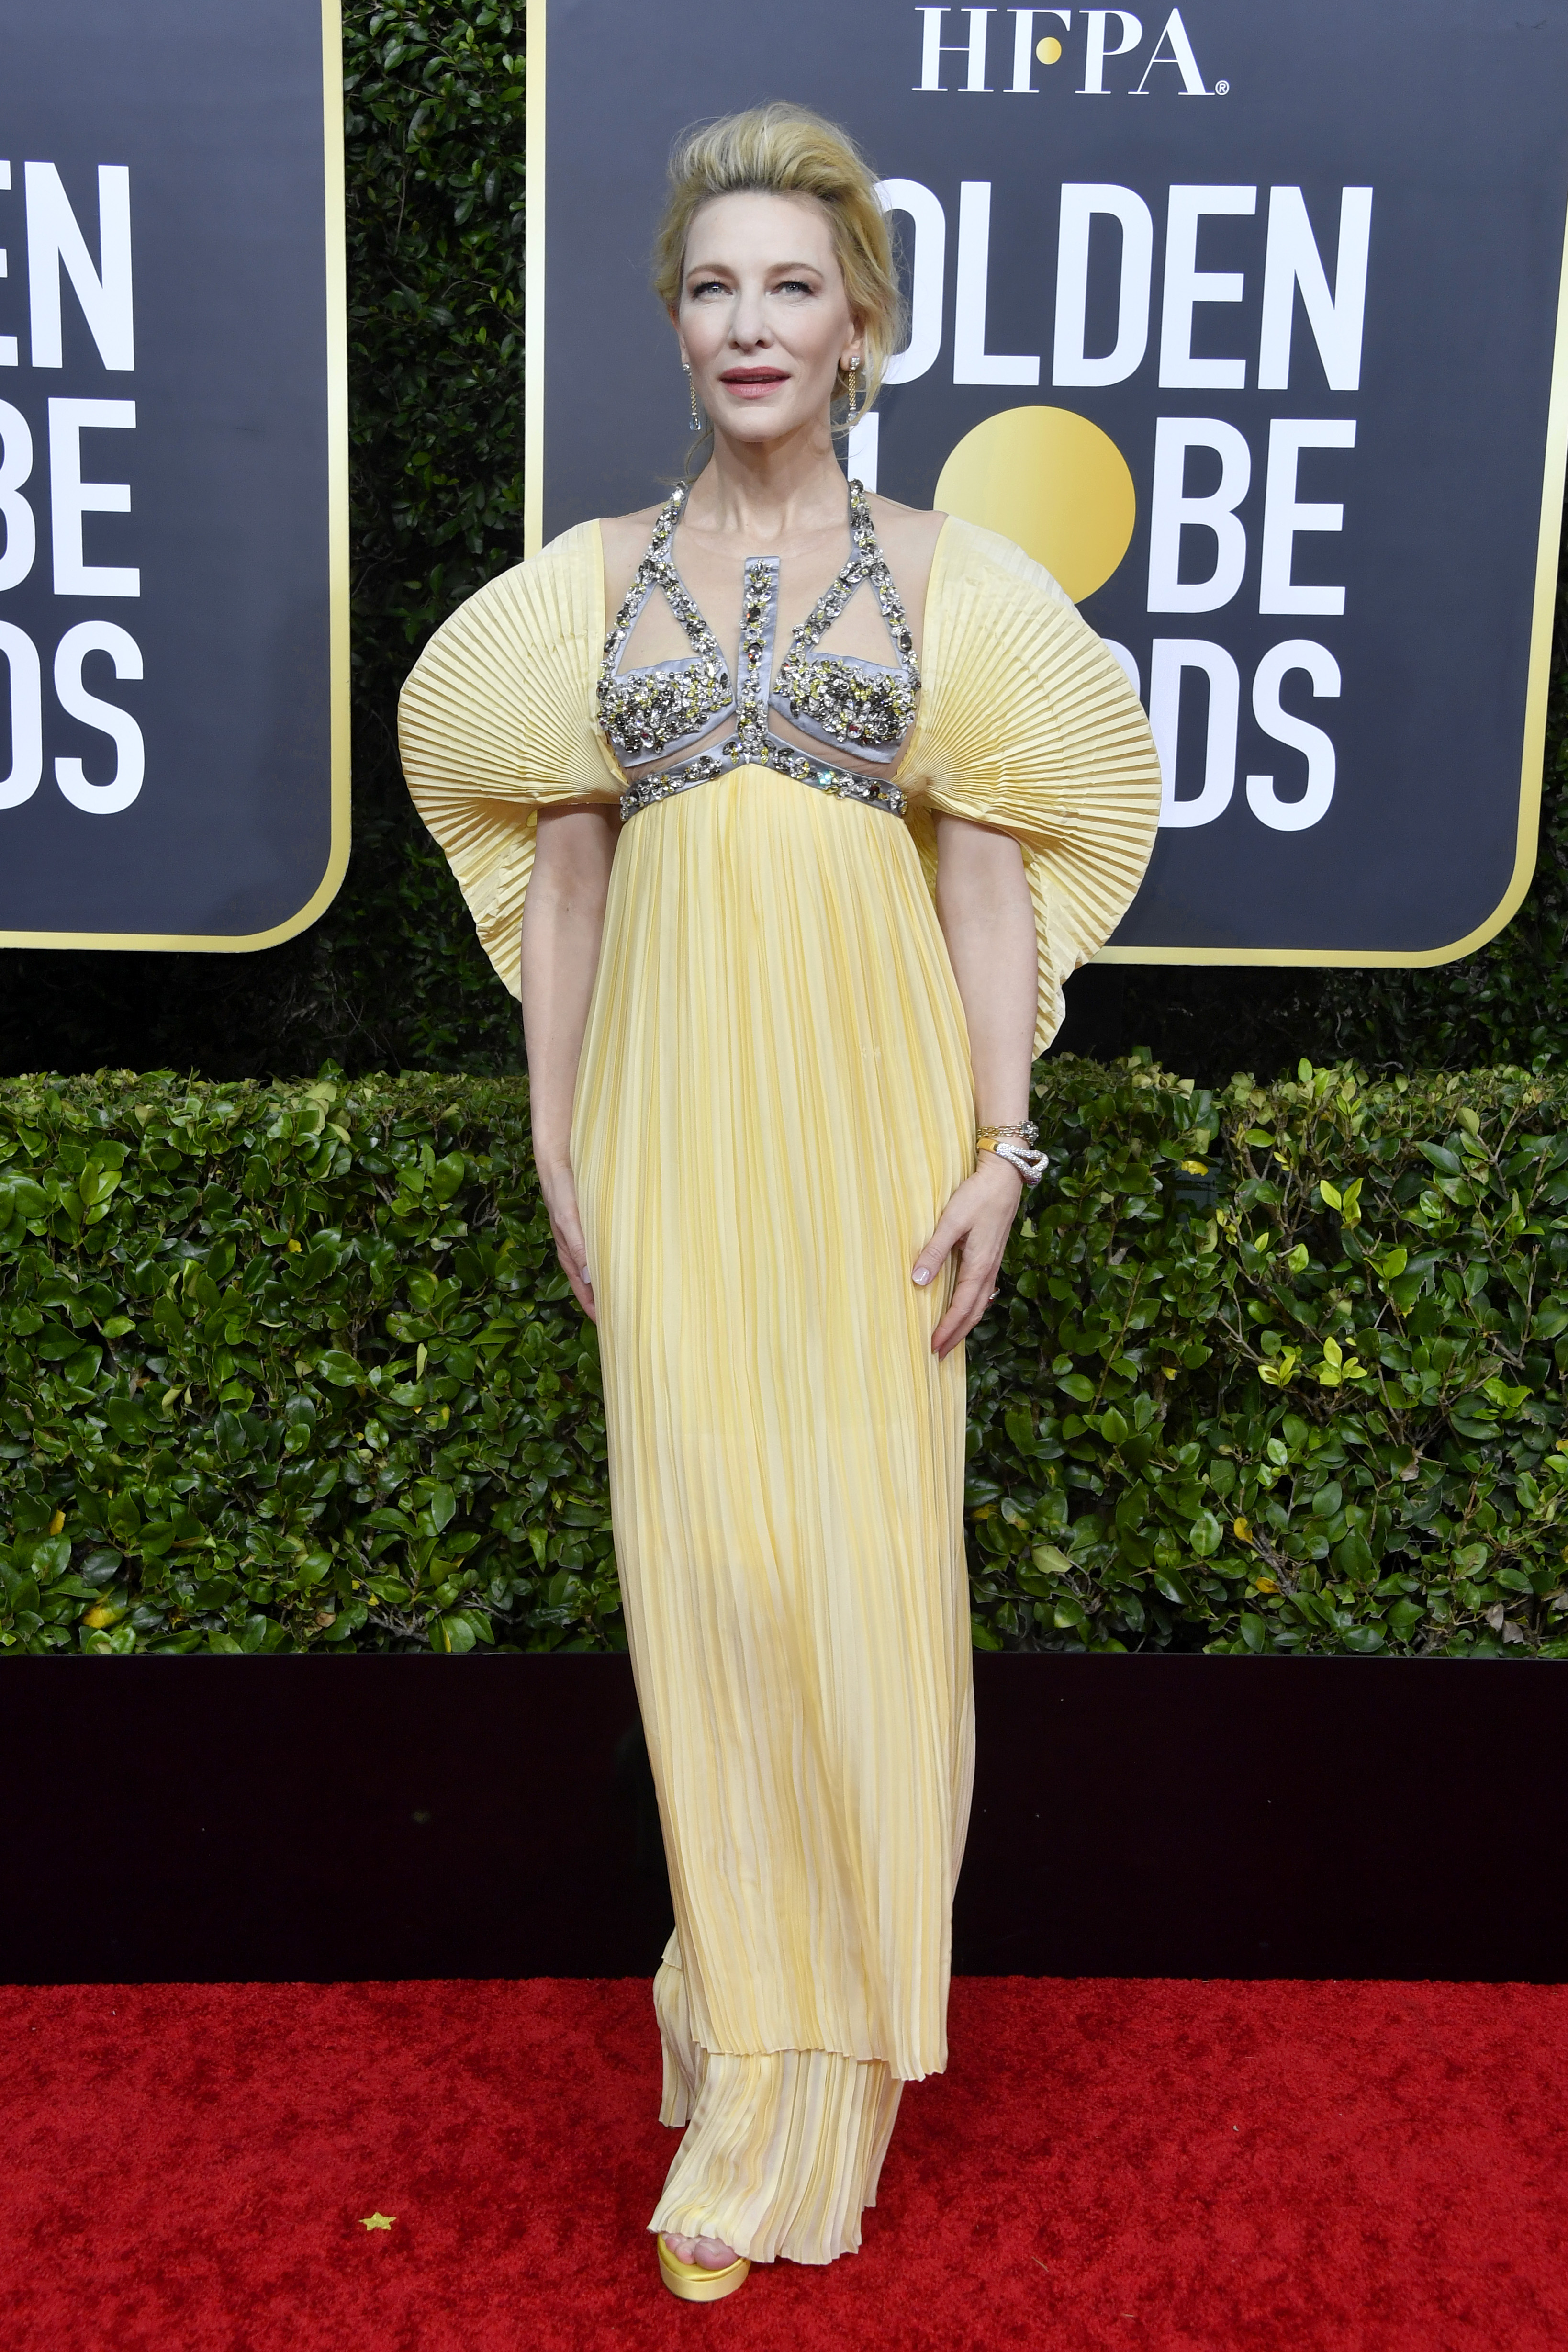 BEVERLY HILLS, CALIFORNIA - JANUARY 05: Cate Blanchett attends the 77th Annual Golden Globe Awards at The Beverly Hilton Hotel on January 05, 2020 in Beverly Hills, California. (Photo by Frazer Harrison/Getty Images)